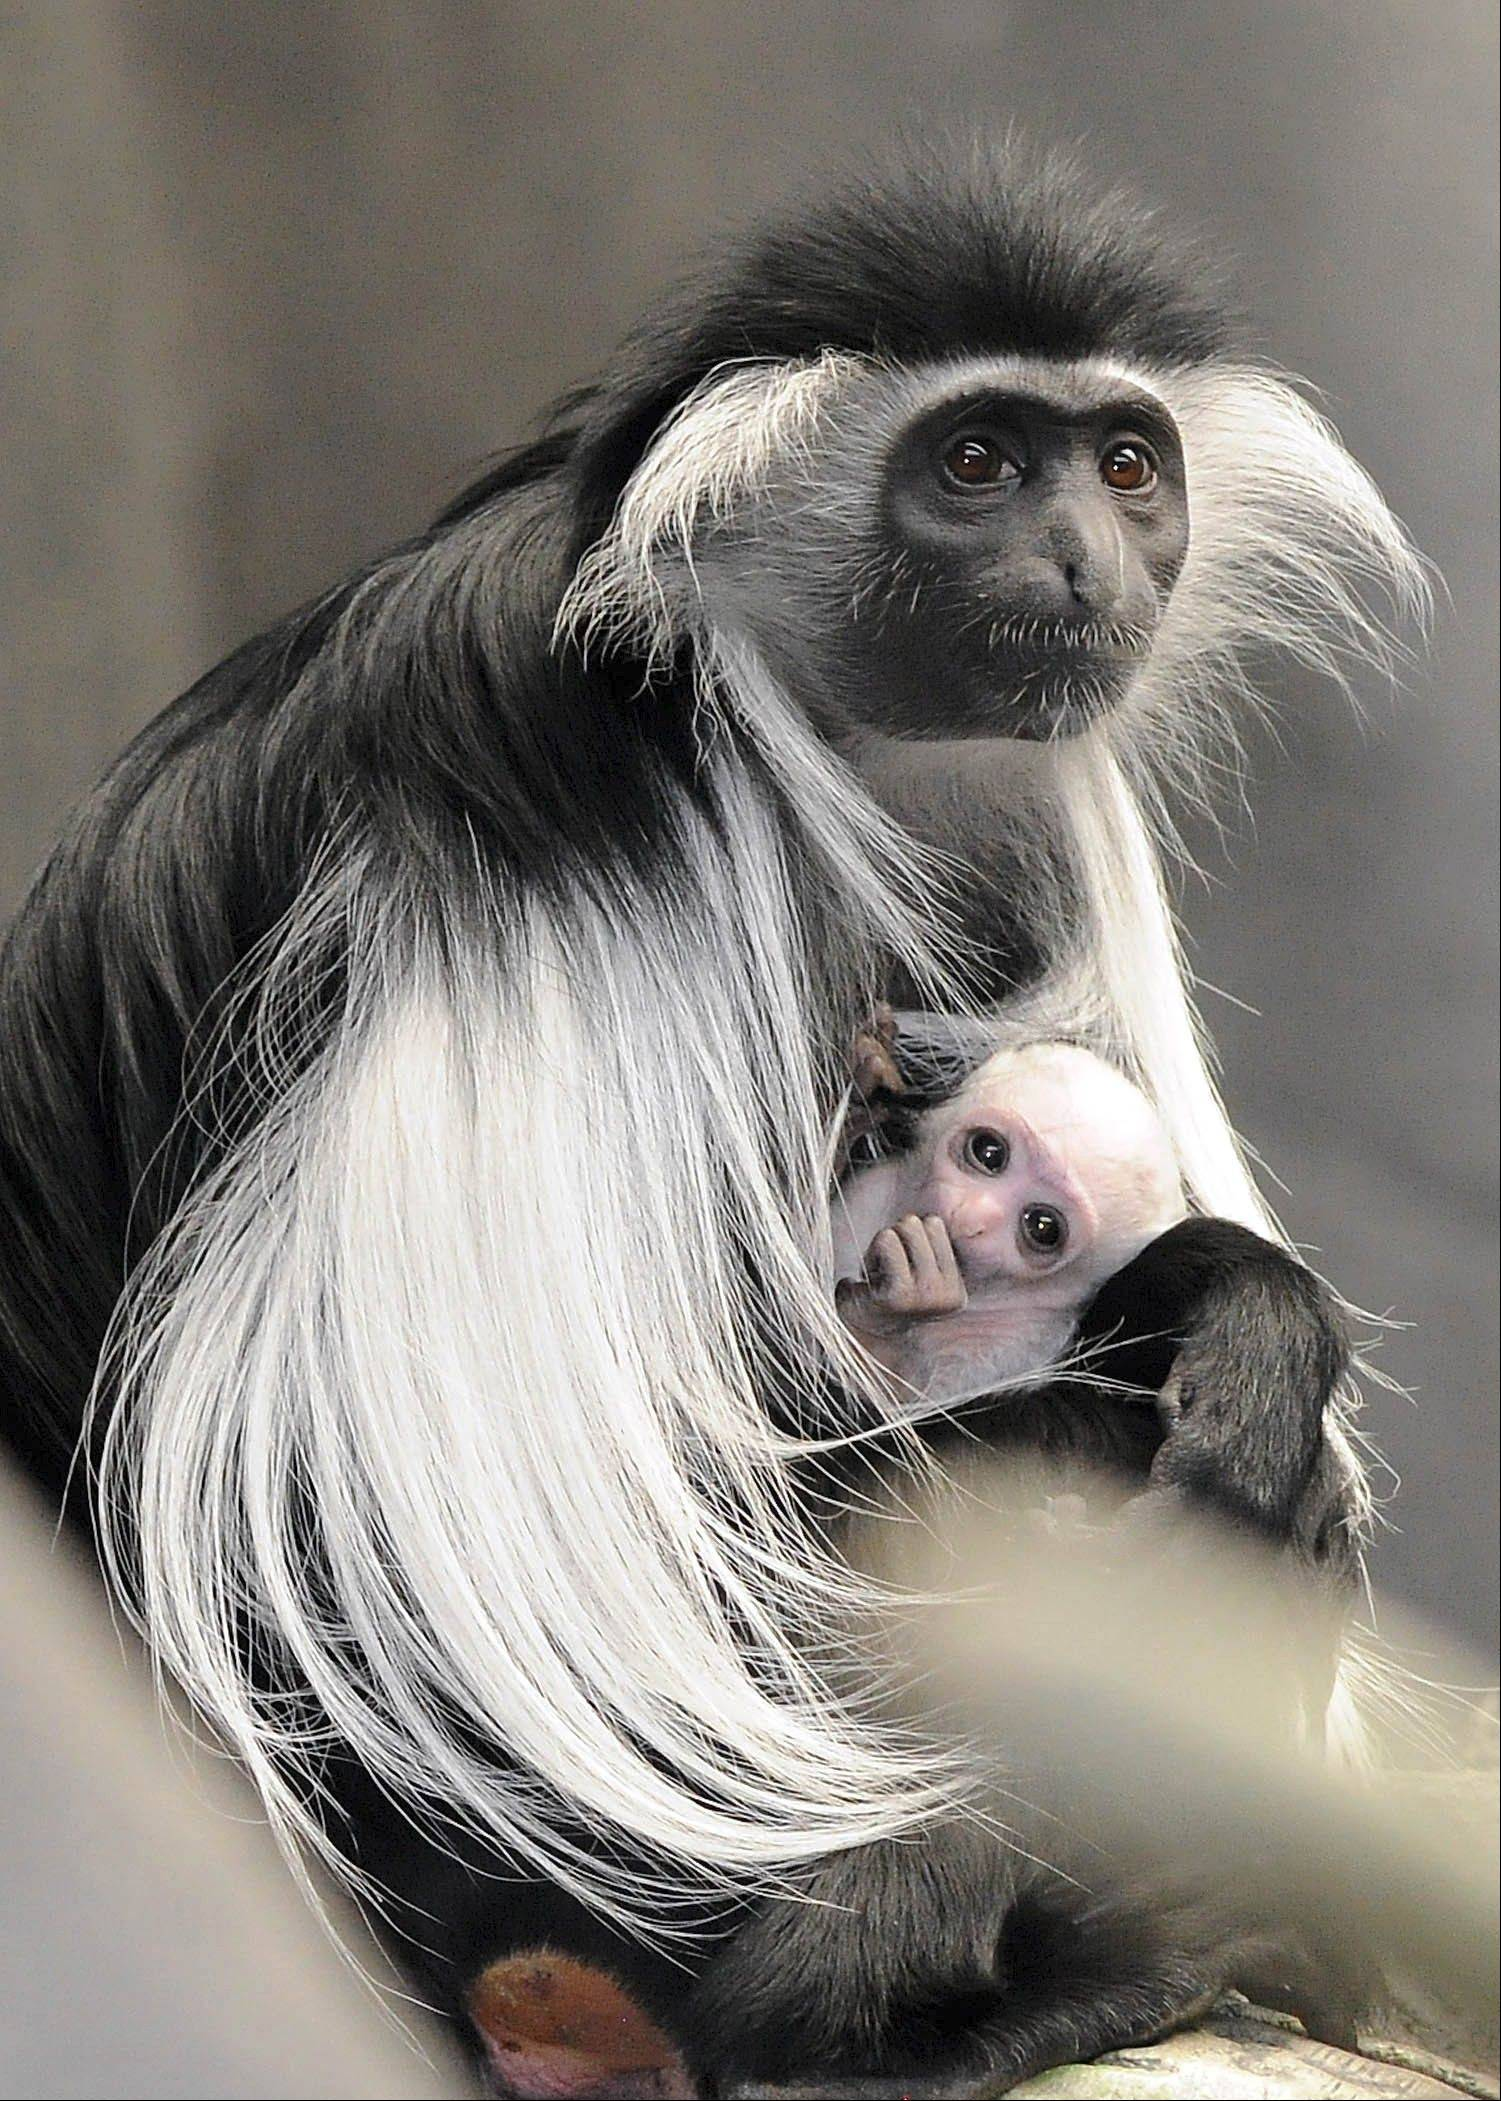 A newborn Angolan colobus monkey is held by its mother in the Tropic World exhibit at Brookfield Zoo. The baby, born on March 9, is the first birth of this species of colobus at Brookfield Zoo.